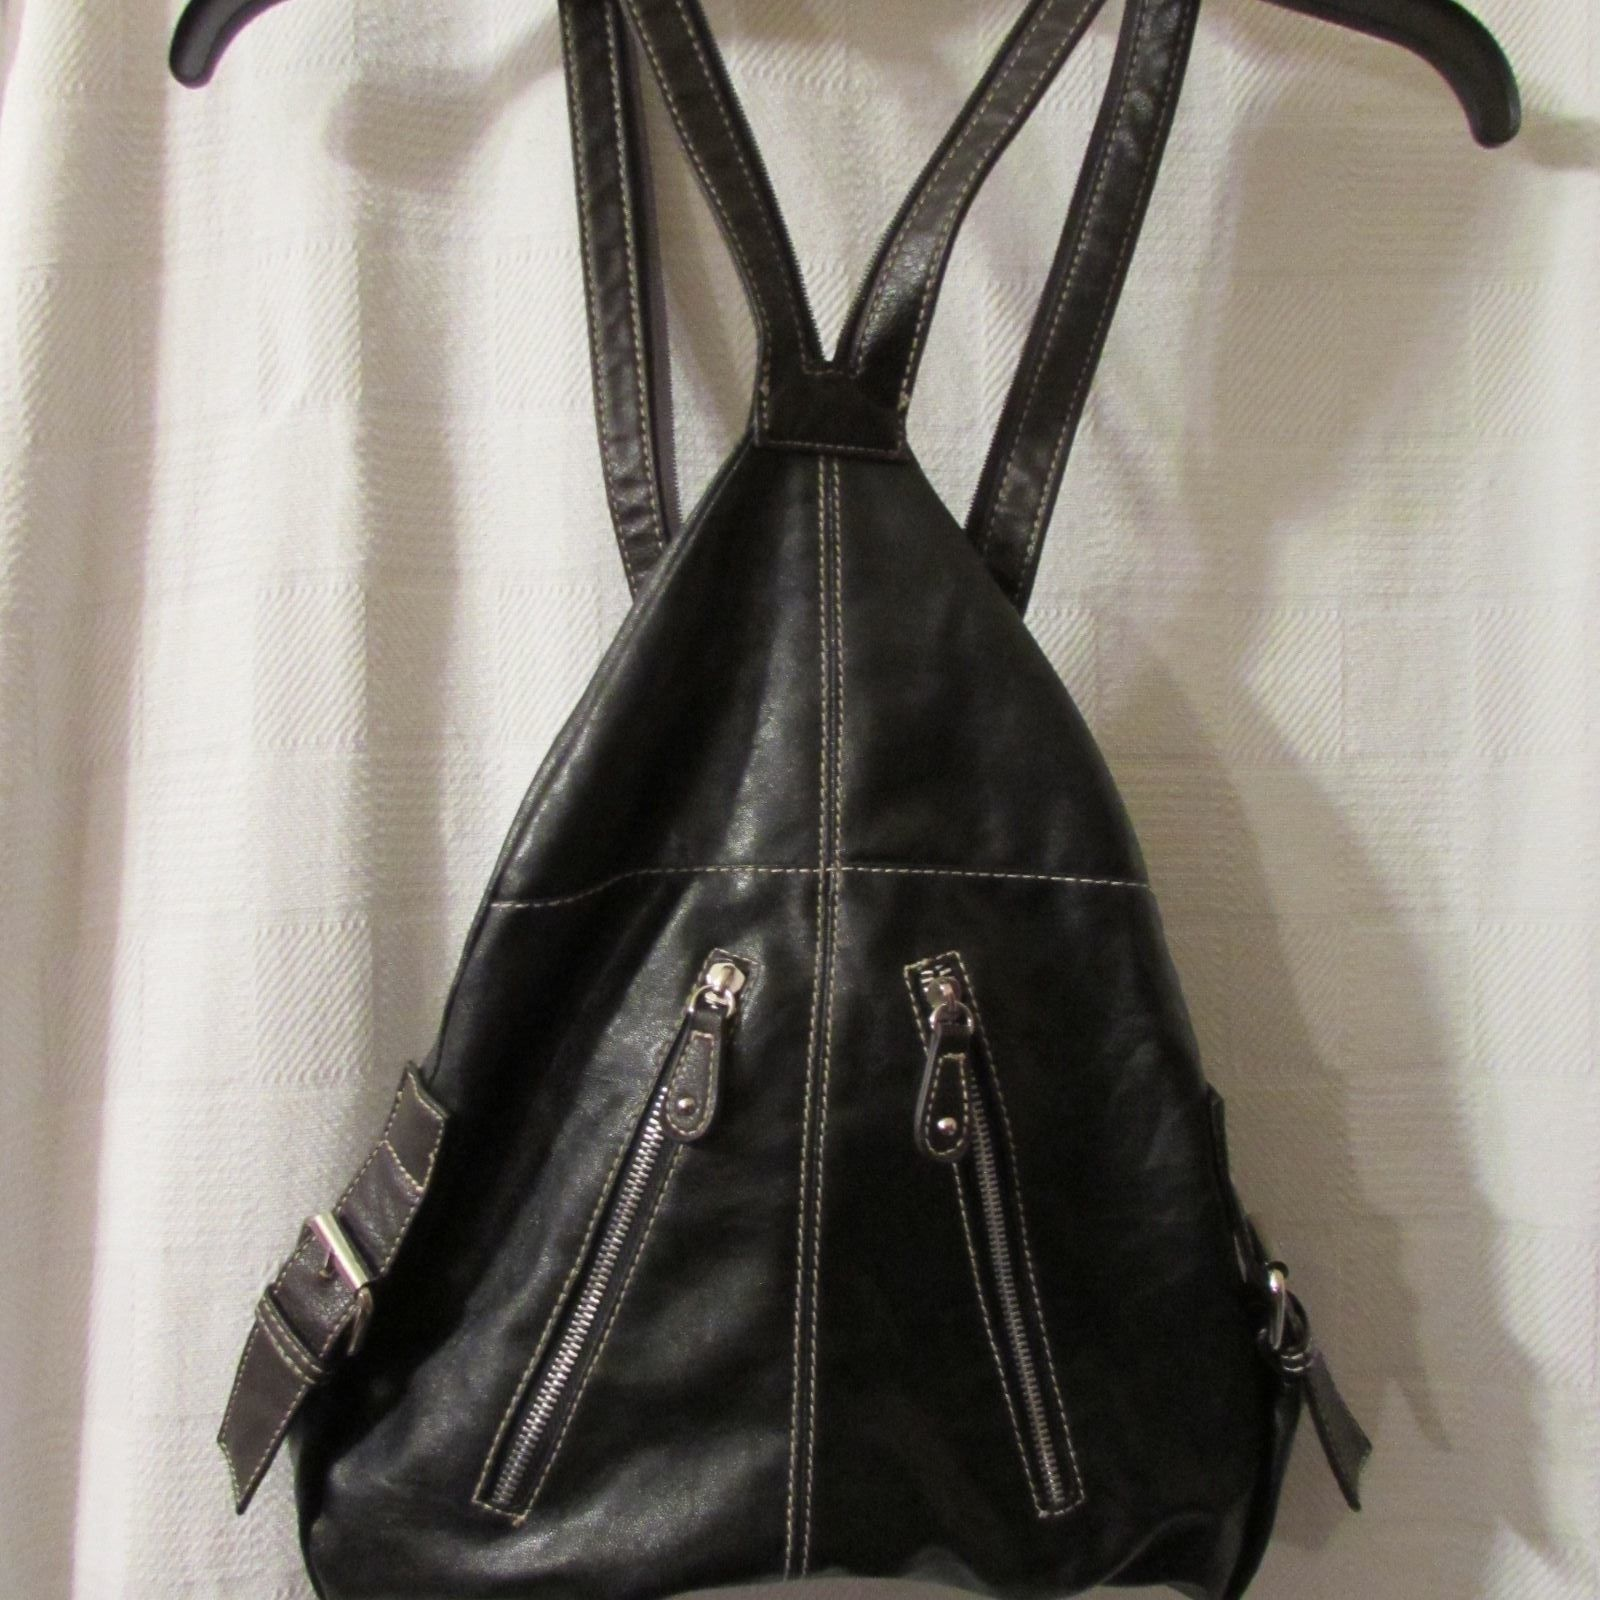 Chateau Black Backpack style Handbag/Faux Leather